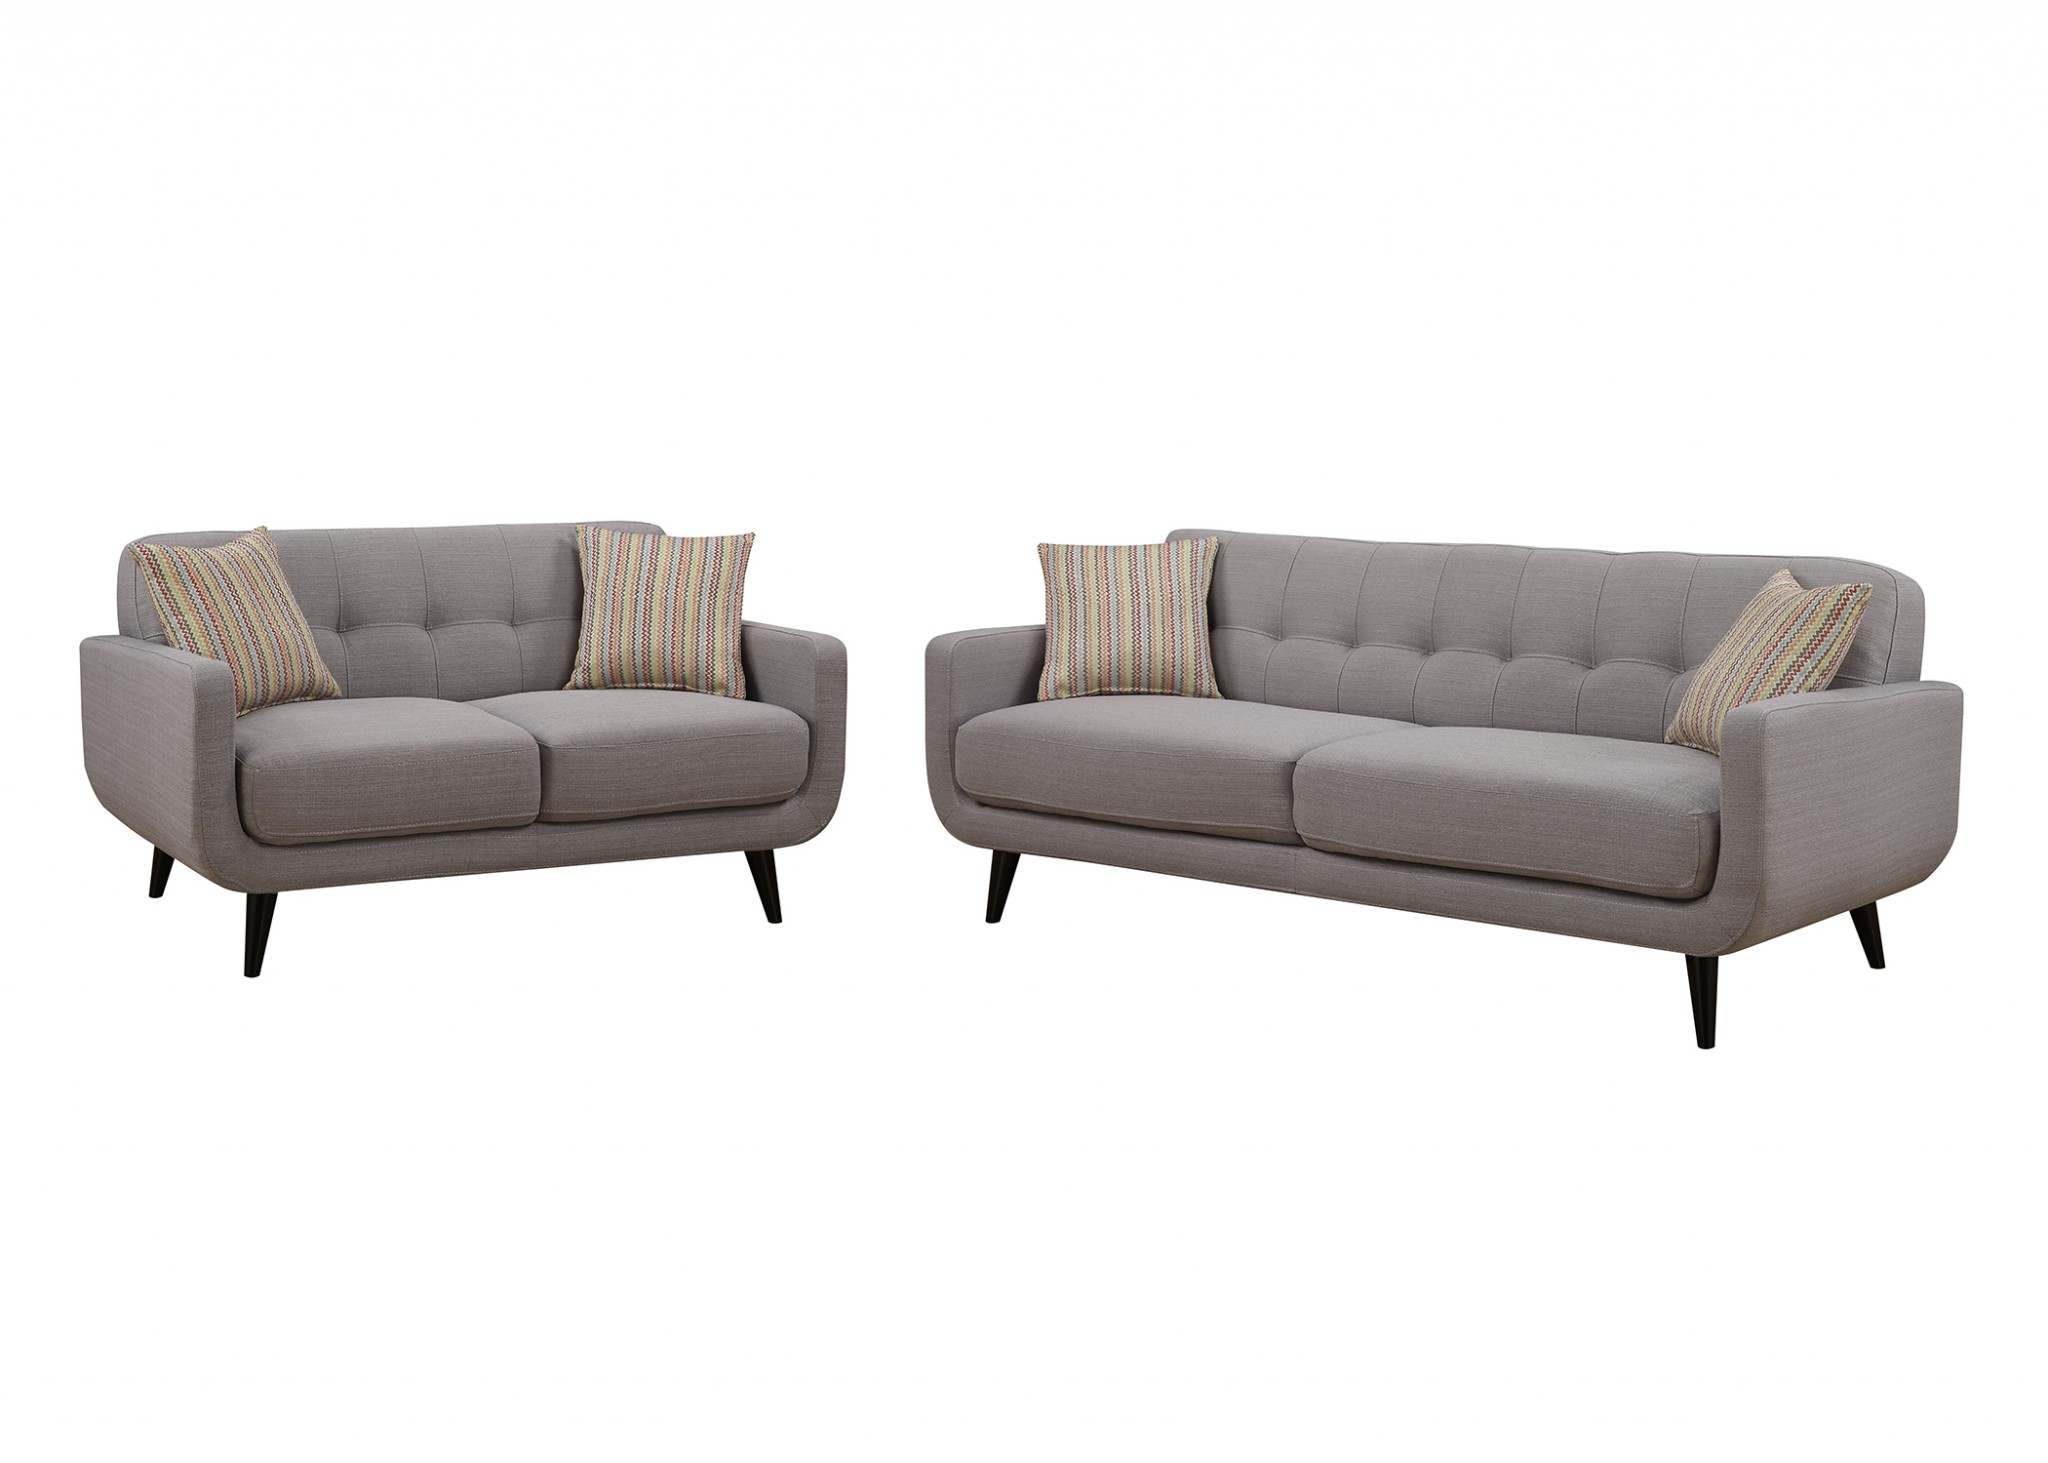 Gray 2pc Polyester Fabric Sofa and Love Seat Living Room Set